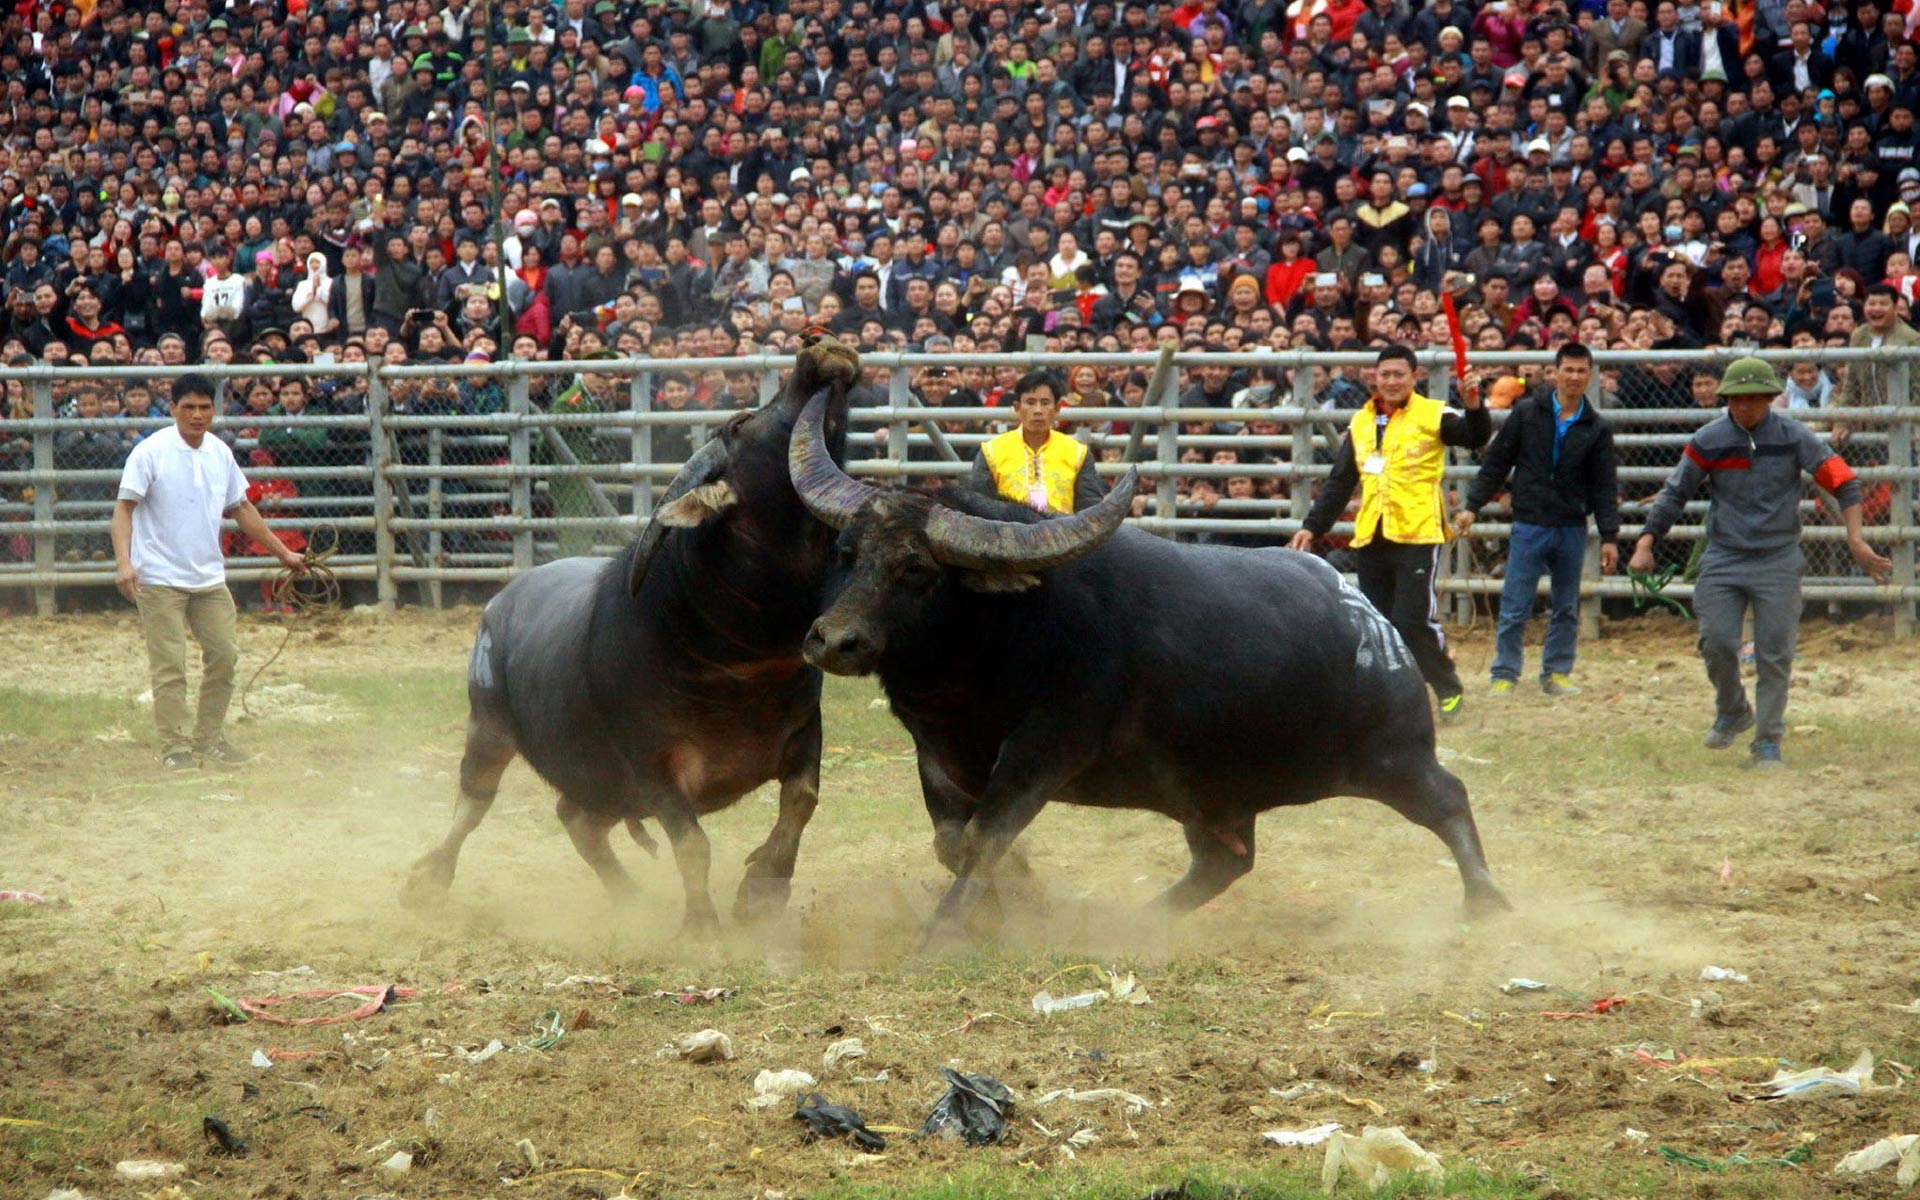 The excitement of the crowds in Buffalo Fighting Festival in Do Son, Hai Phong.